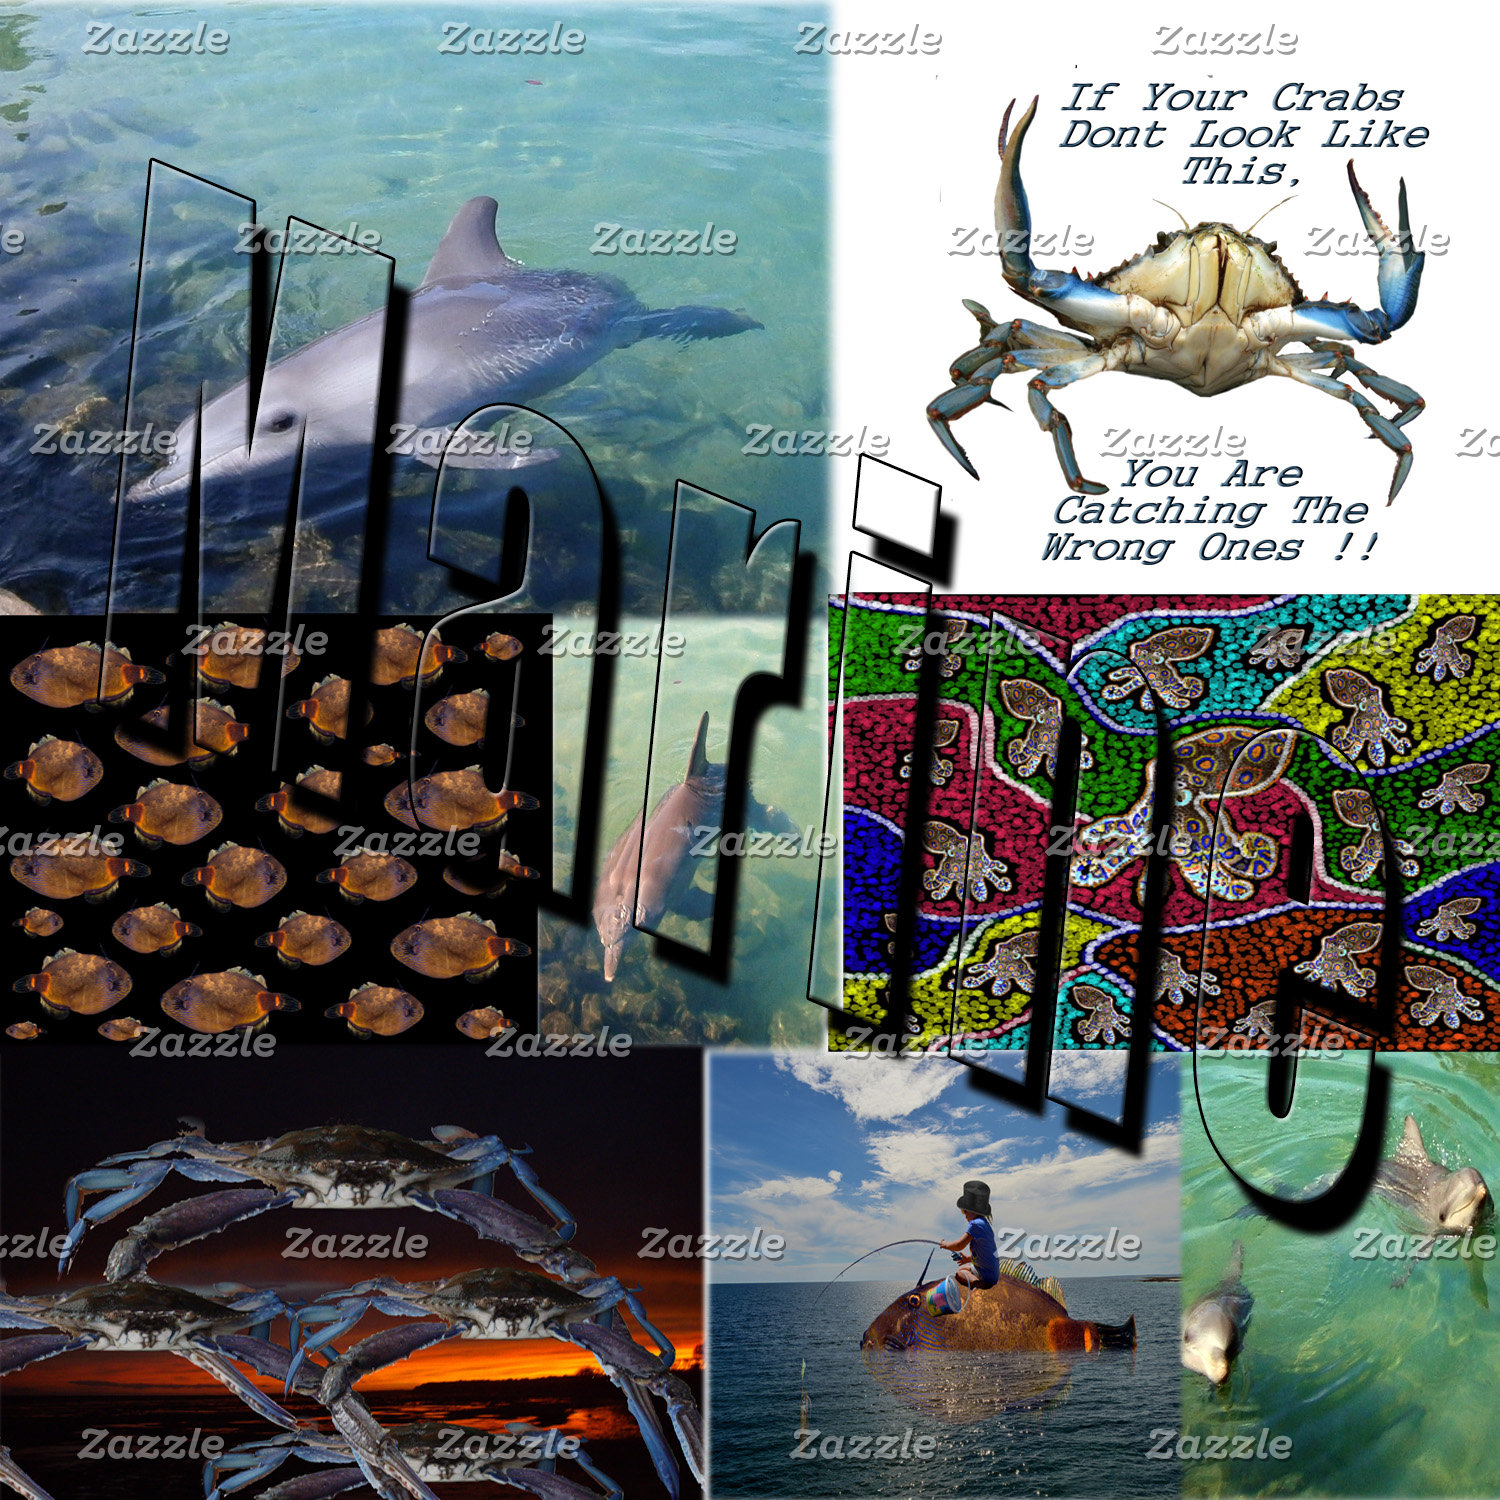 Fishing,-Fish,-Sea life,-Products.